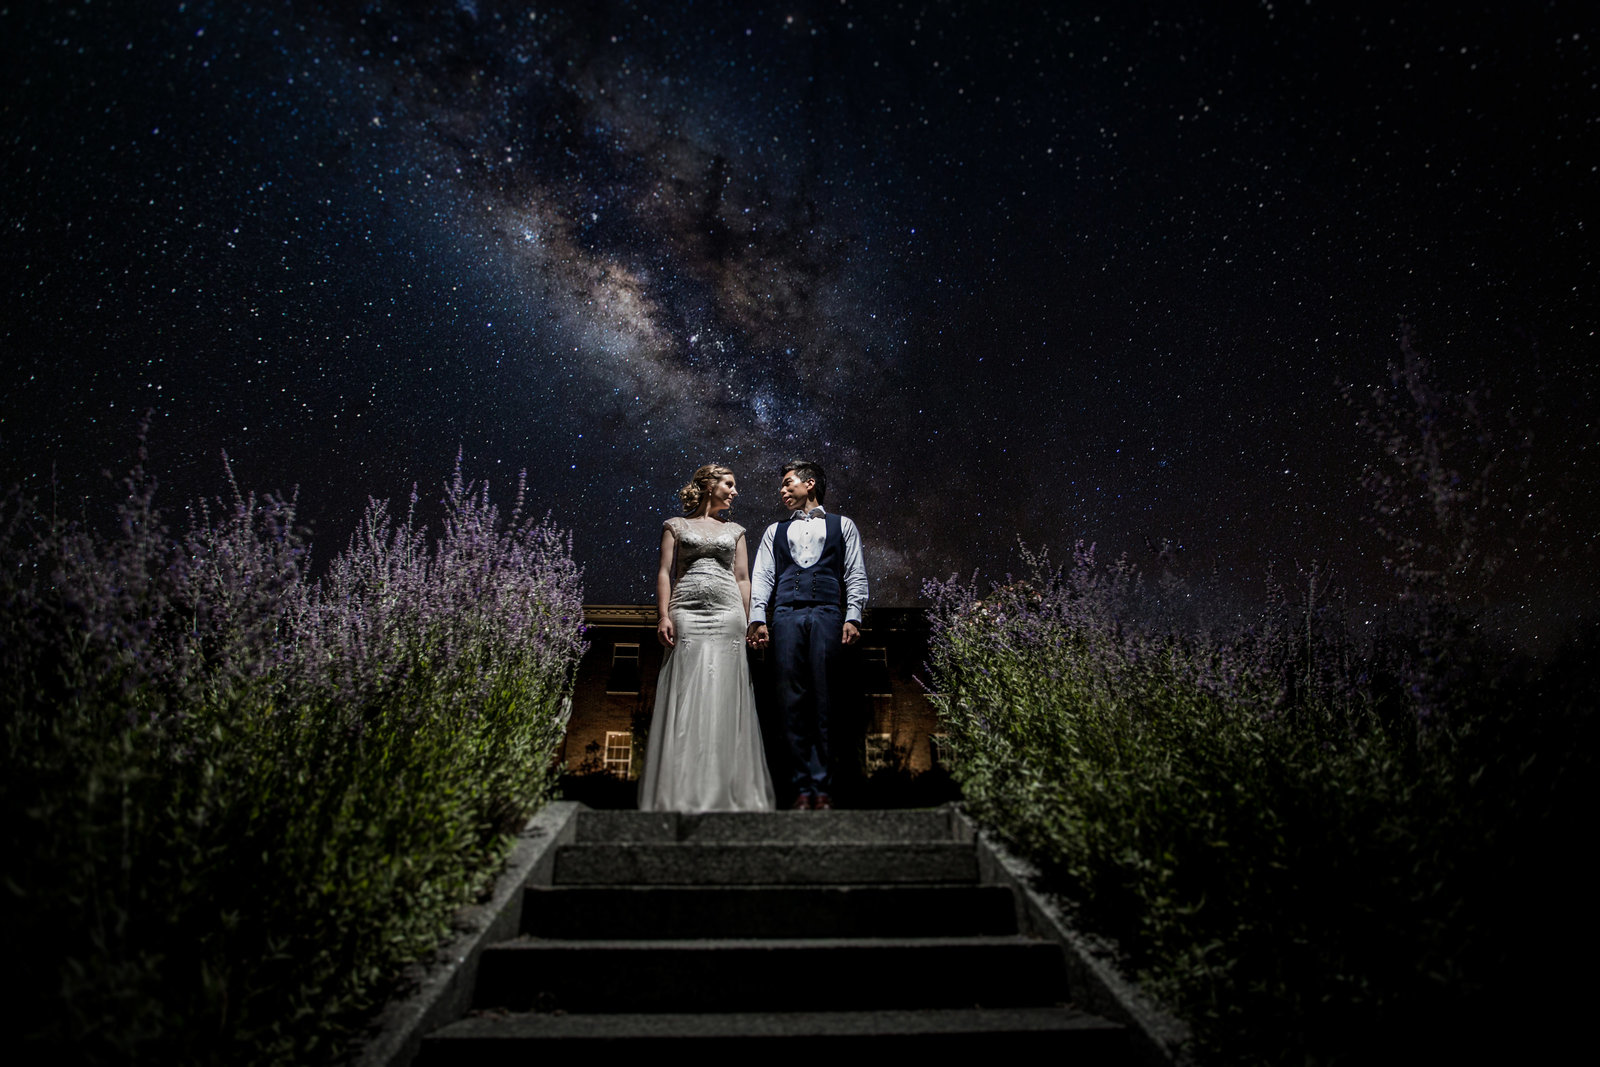 A Bride and Groom stand at the top of stairs lined with lavender. Behind them is a starry sky. They're looking at each other and smiling.